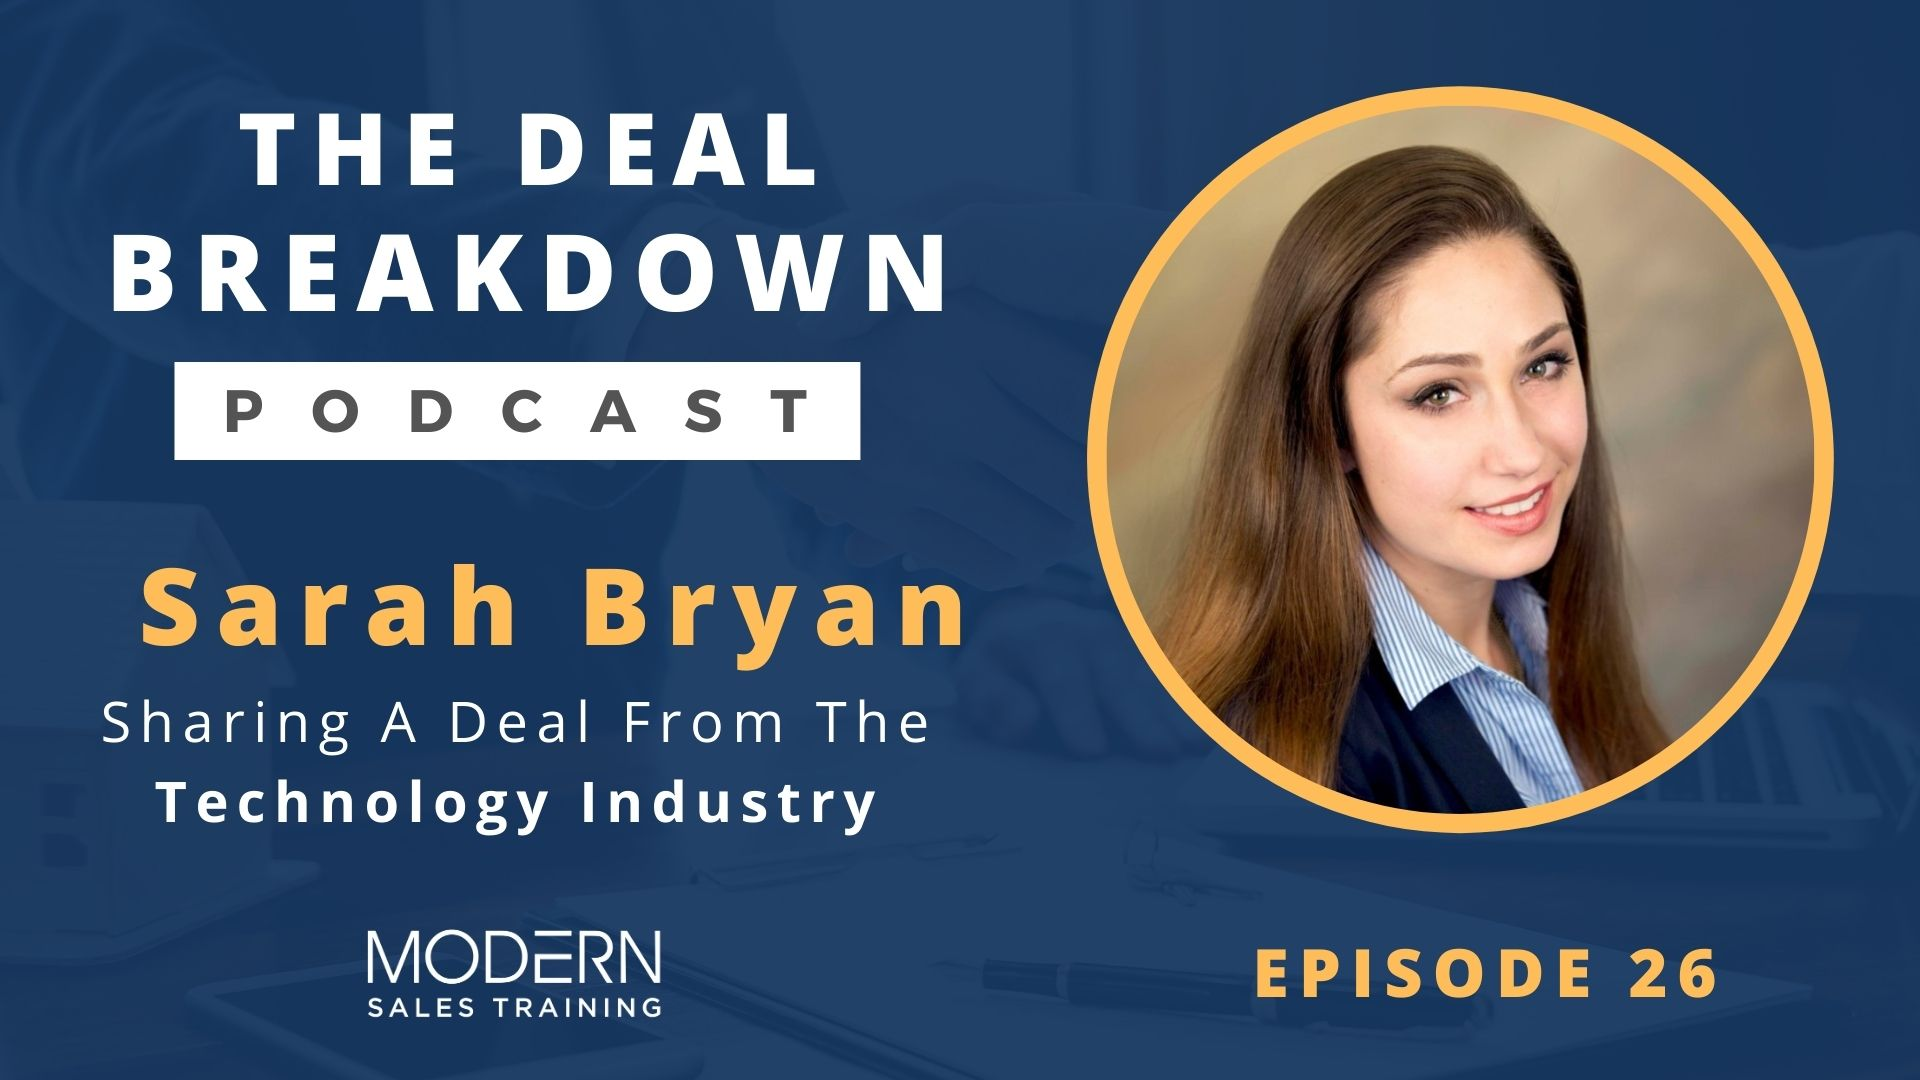 The-Deal-Breakdown-Podcast-Modern-Sales-Training-Sarah Bryan